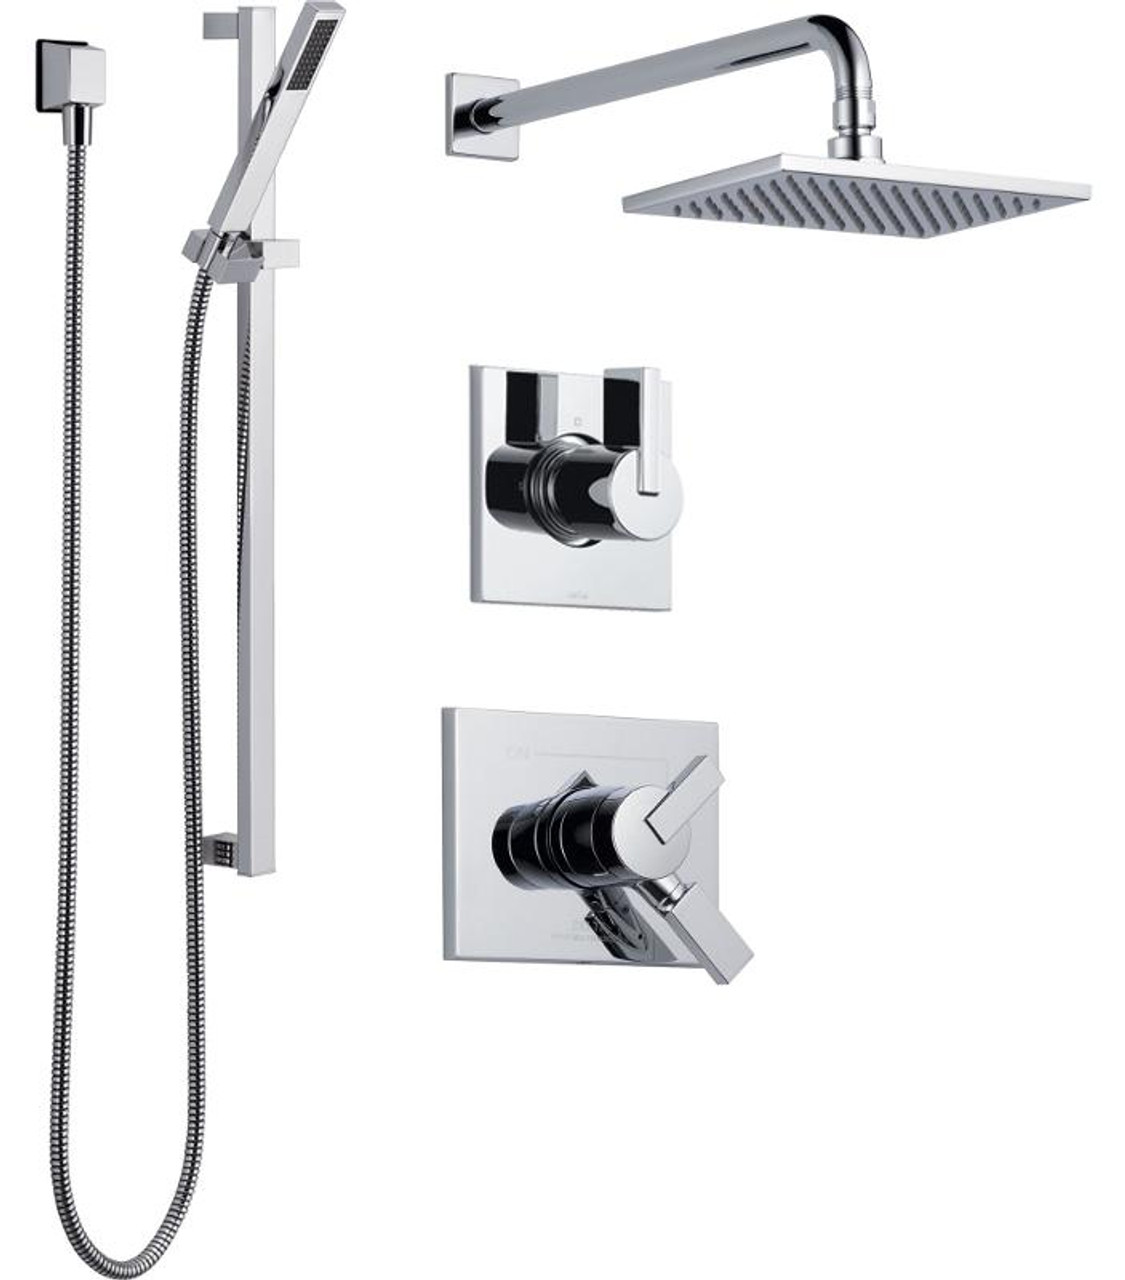 dripping integrated brilliance head systems volume heads polished nickel thermostatic delta shower system with control series